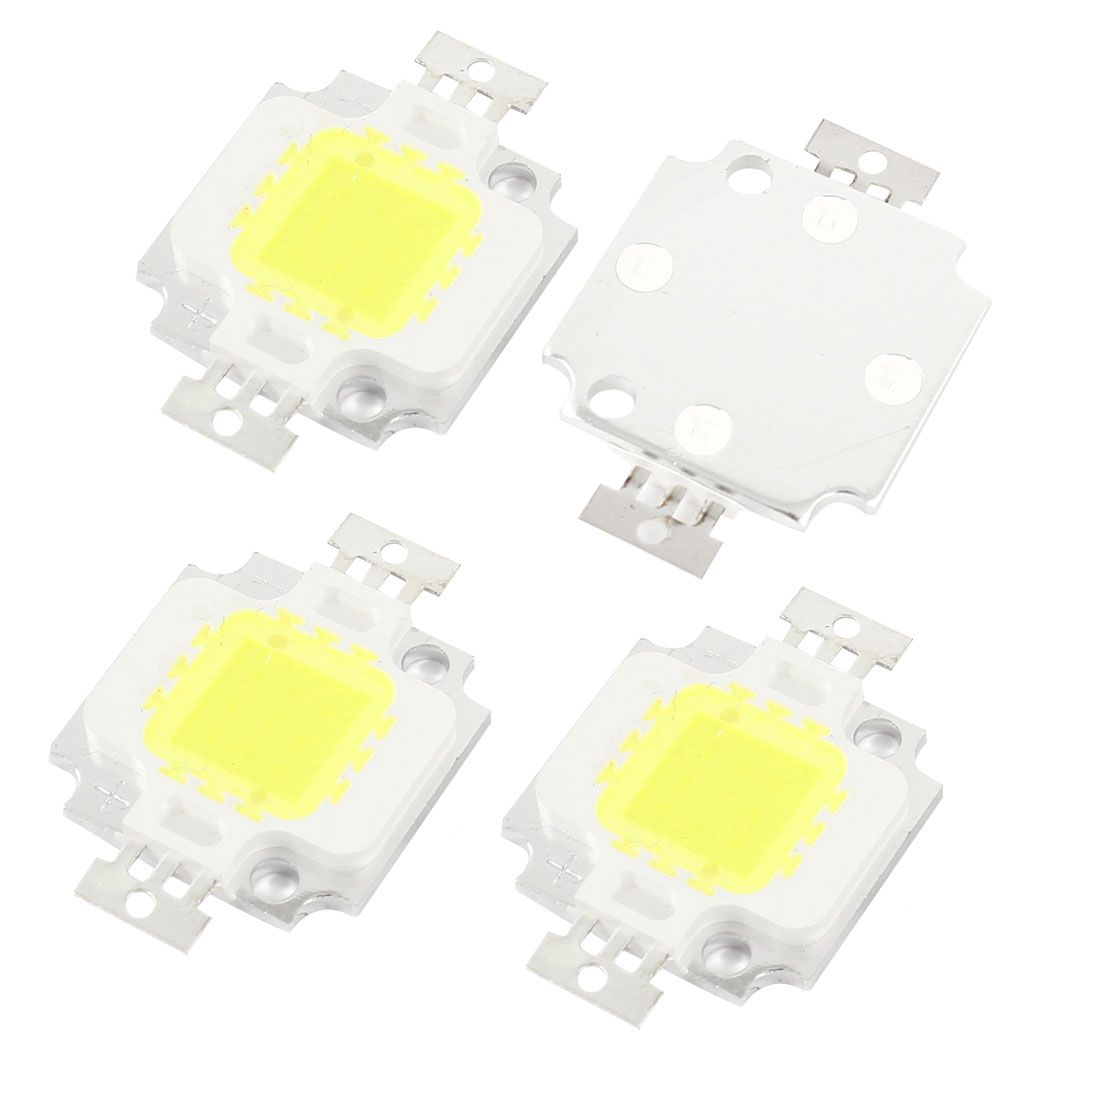 4pcs 10W White Light High Power LED Lamp Emitter Metal Plate 850-900LM